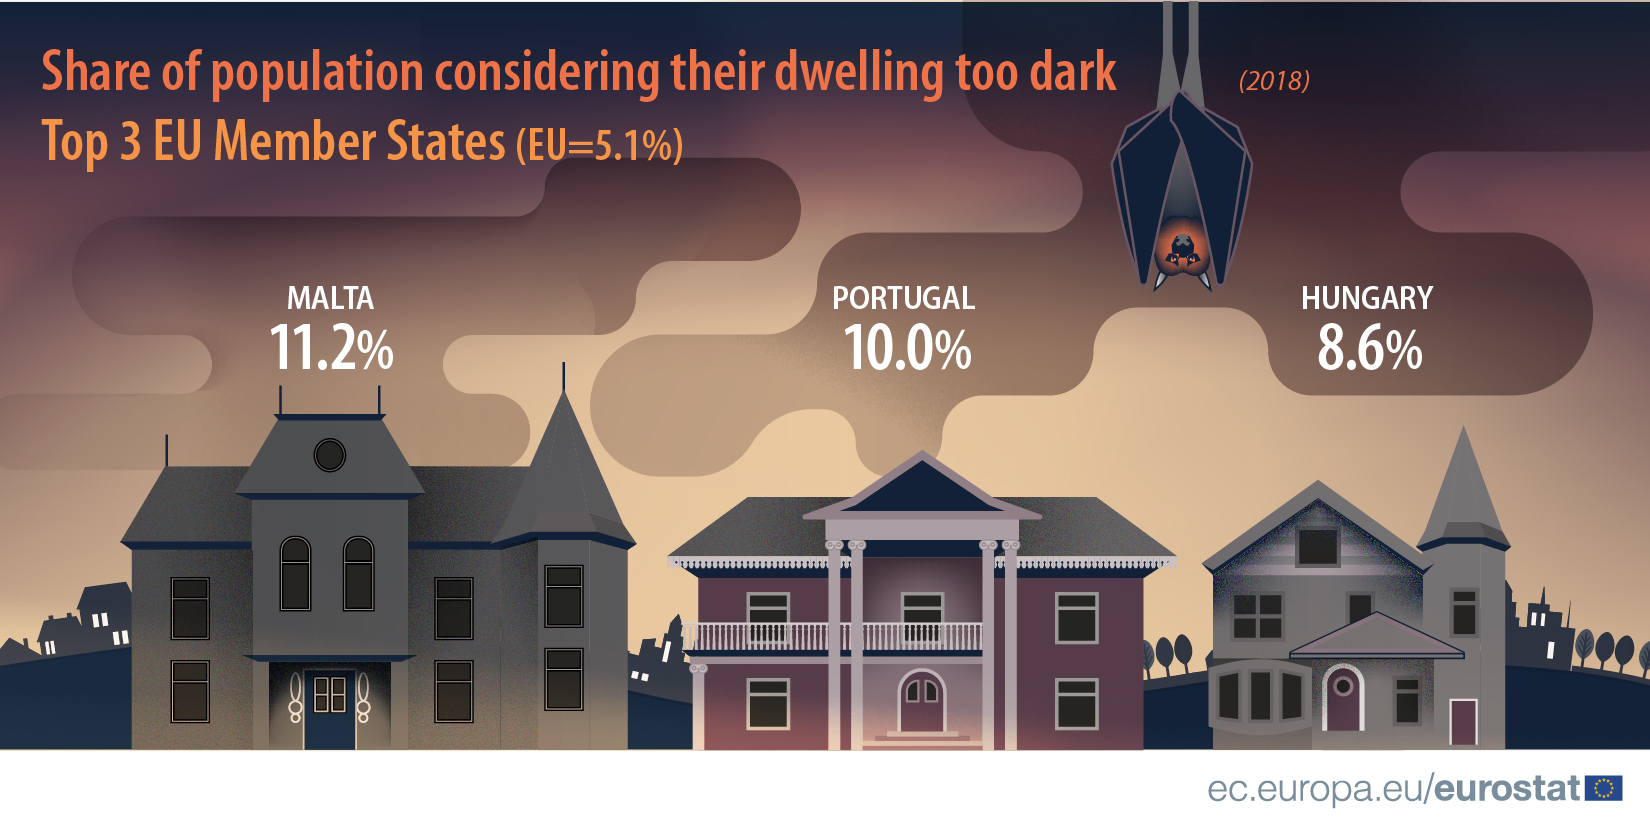 Share of population considering their dwelling too dark, 2018